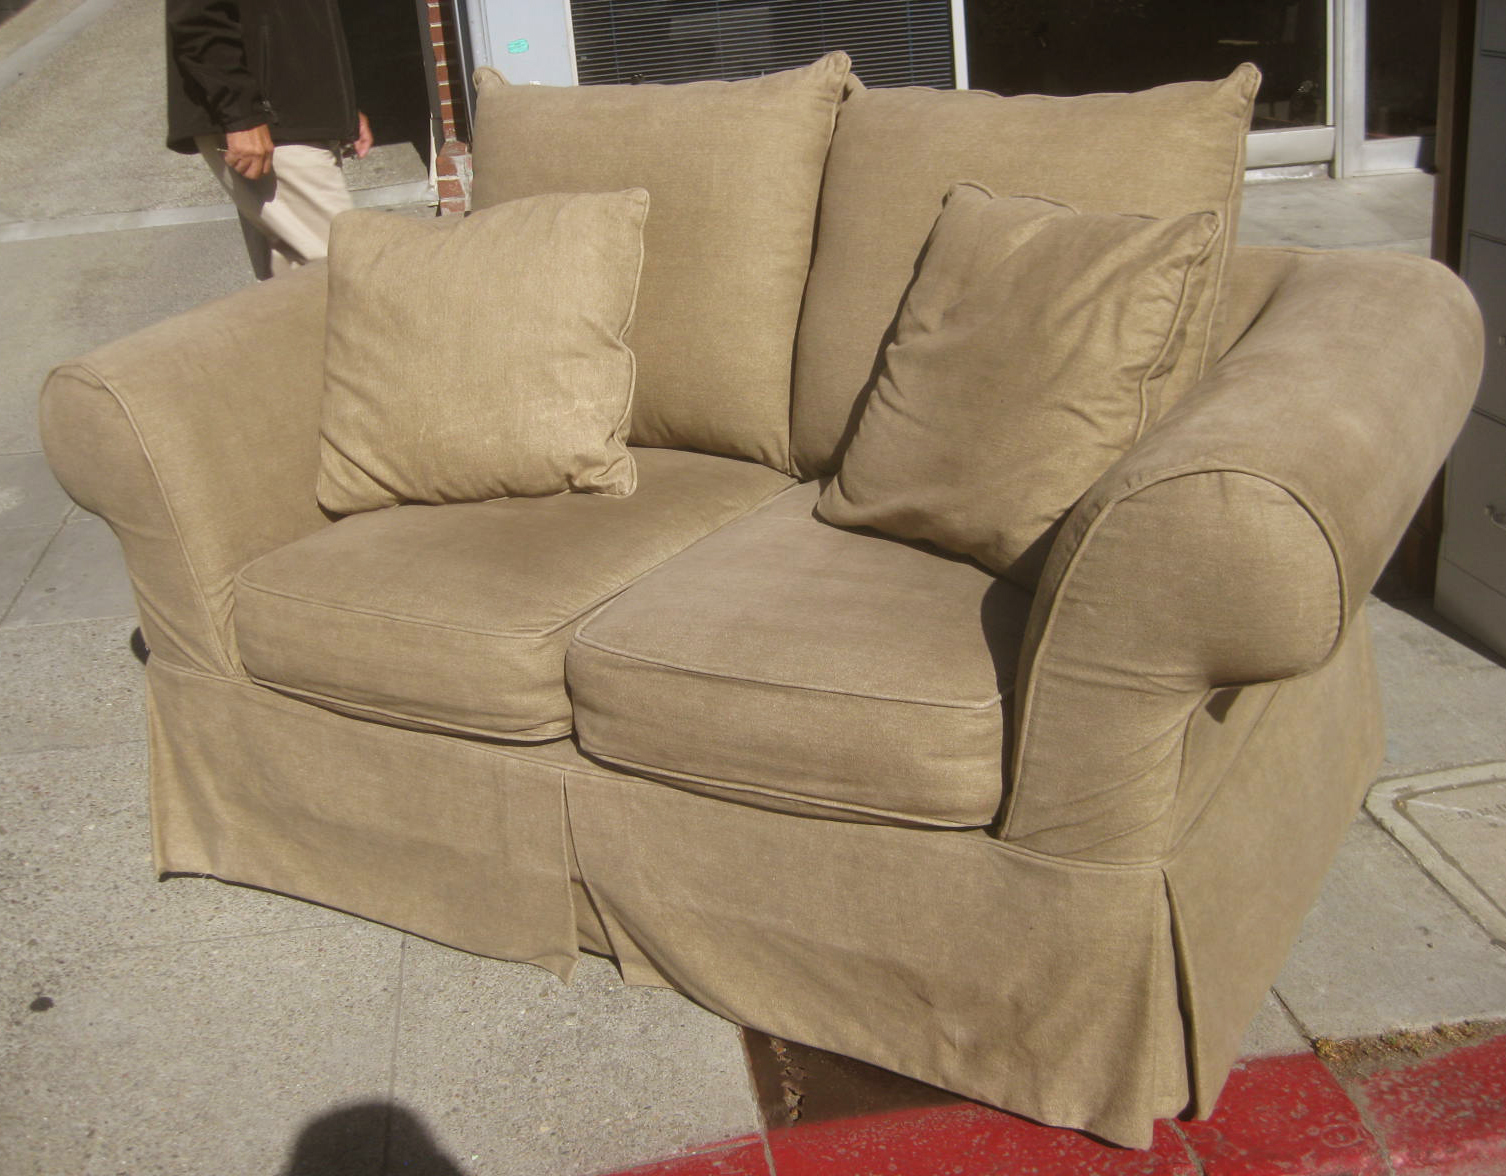 Uhuru Furniture Collectibles Sold Plush Loveseat 175